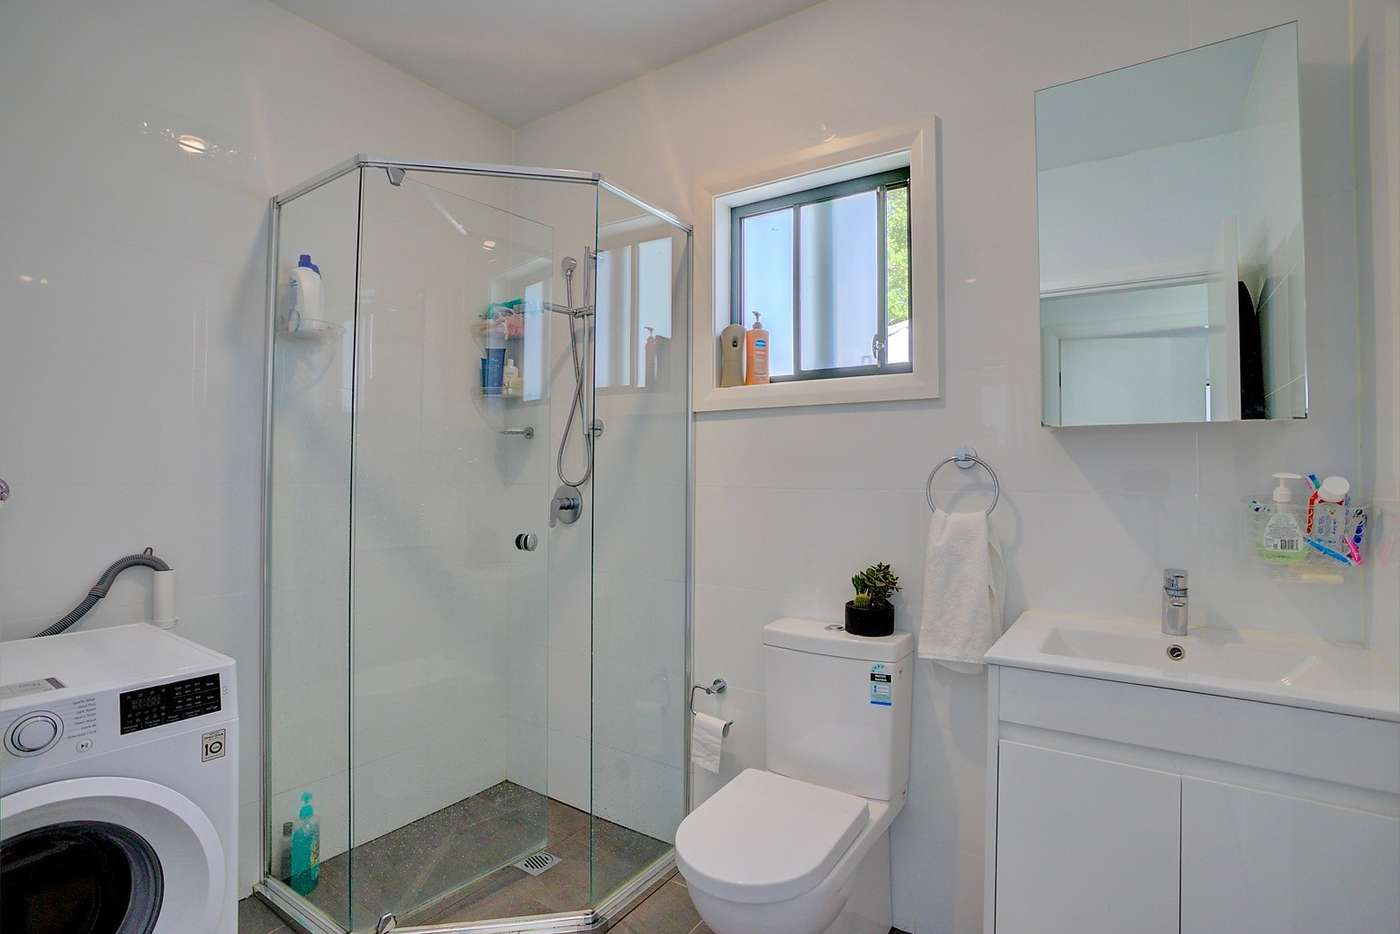 Seventh view of Homely villa listing, Granny flat/10A Wentworth Street, Greenacre NSW 2190